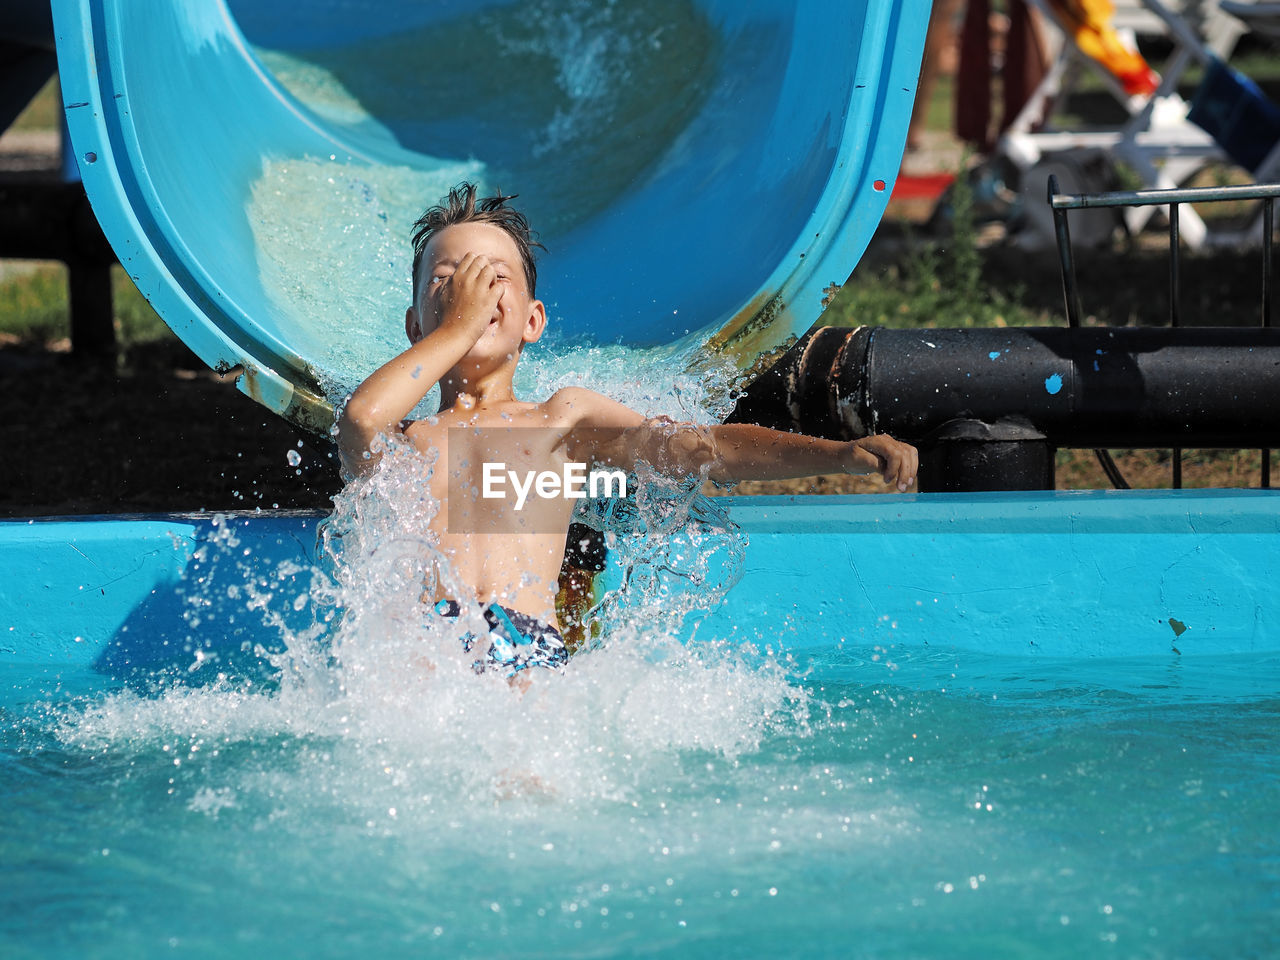 water, leisure activity, motion, fun, splashing, real people, one person, enjoyment, child, swimming pool, childhood, lifestyles, pool, men, day, nature, males, boys, water slide, mouth open, outdoors, inflatable, excitement, innocence